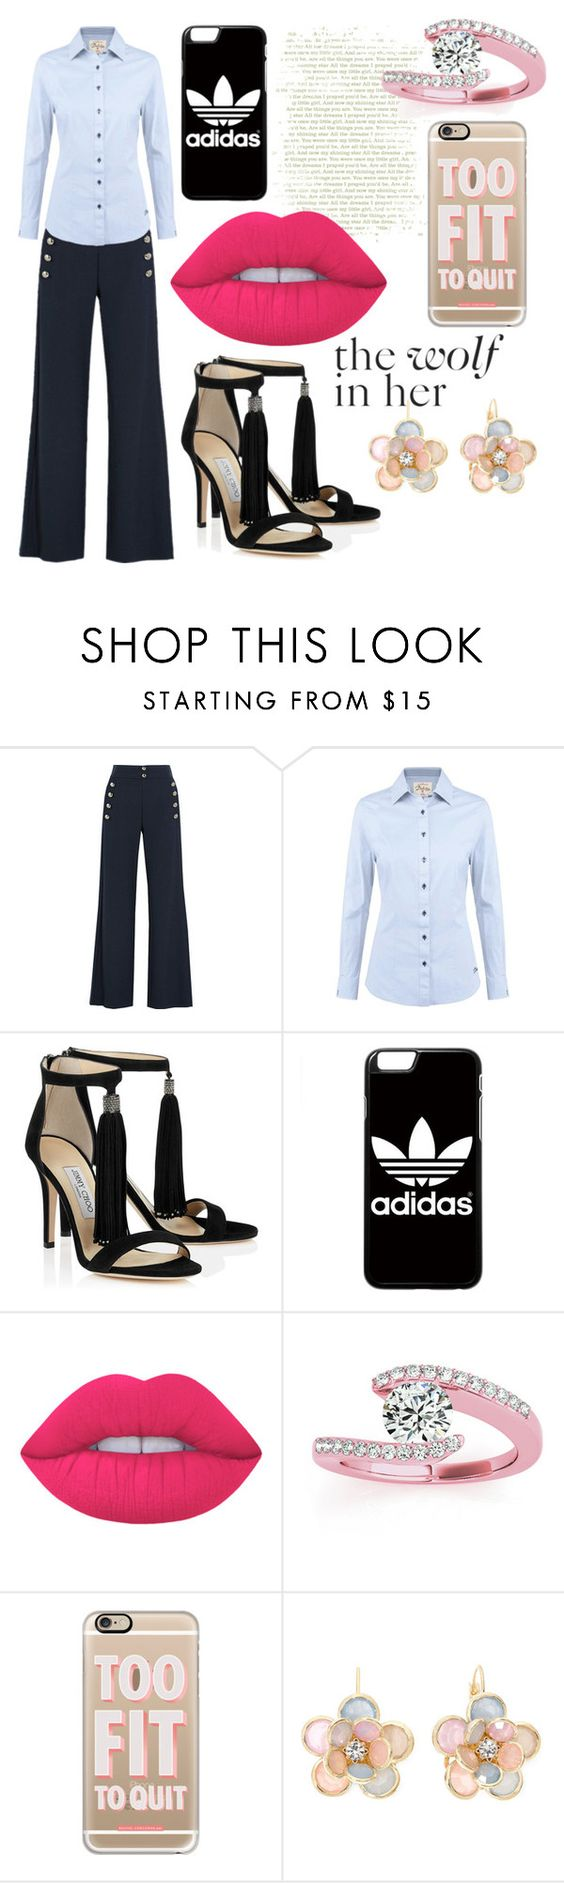 """without merit"" by soidi-illis ❤ liked on Polyvore featuring Chloé, DUBARRY, adidas, Lime Crime, Allurez, Casetify and Mixit"